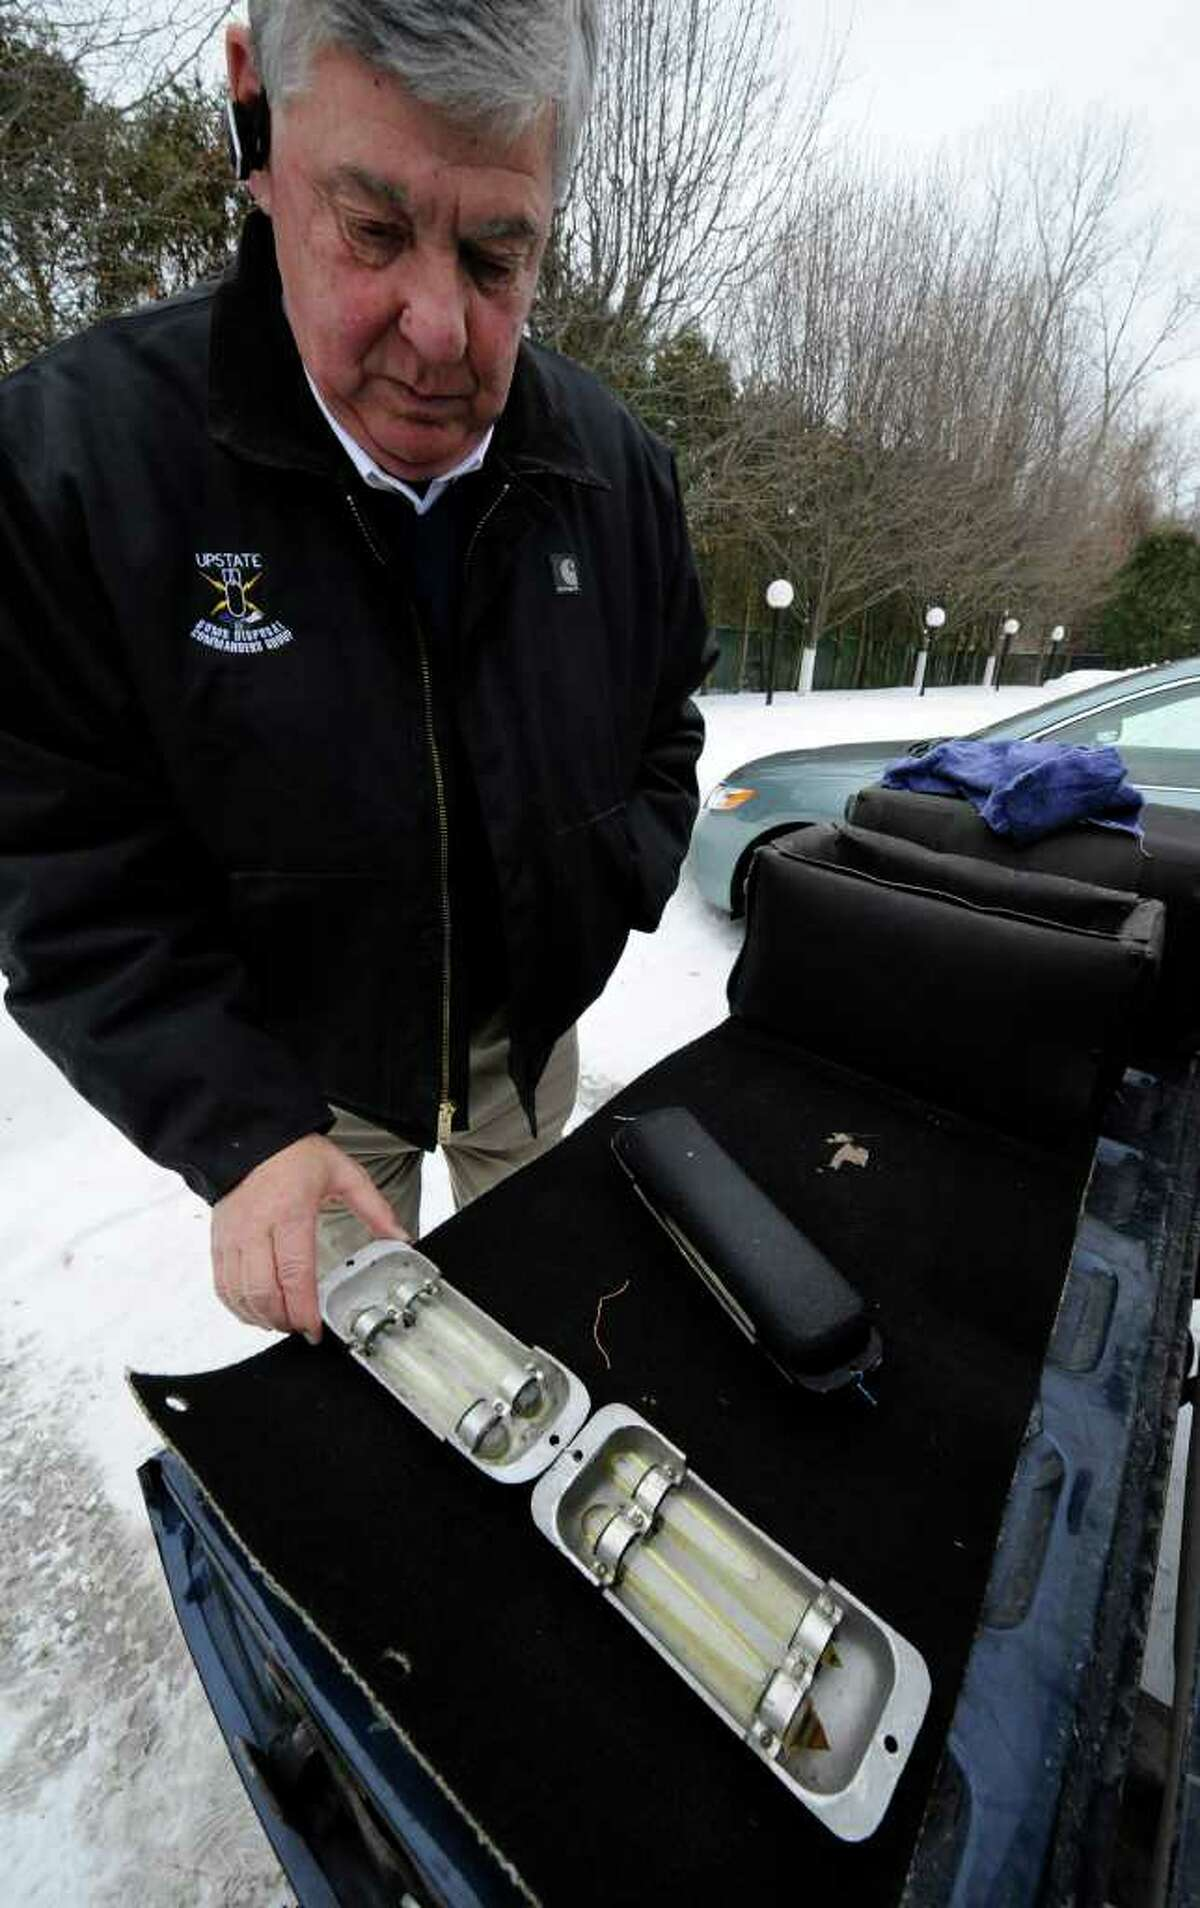 Albany County Sheriff's Department Inspector John Curry looks at tubes of an unknown liquid which were brought to Albany Police headquarters Dec. 29, 2010, after being found in an old safe. (Skip Dickstein / Times Union)